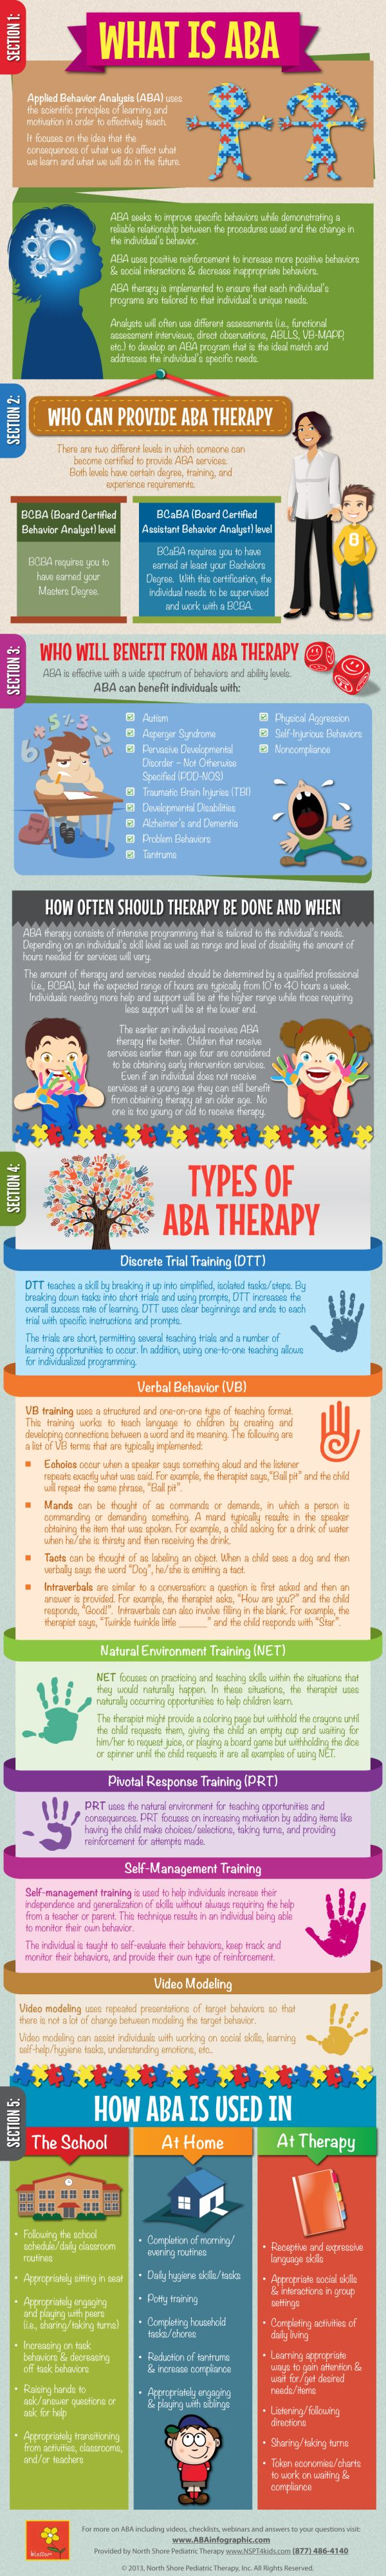 applied behavior analysis ABA infographic